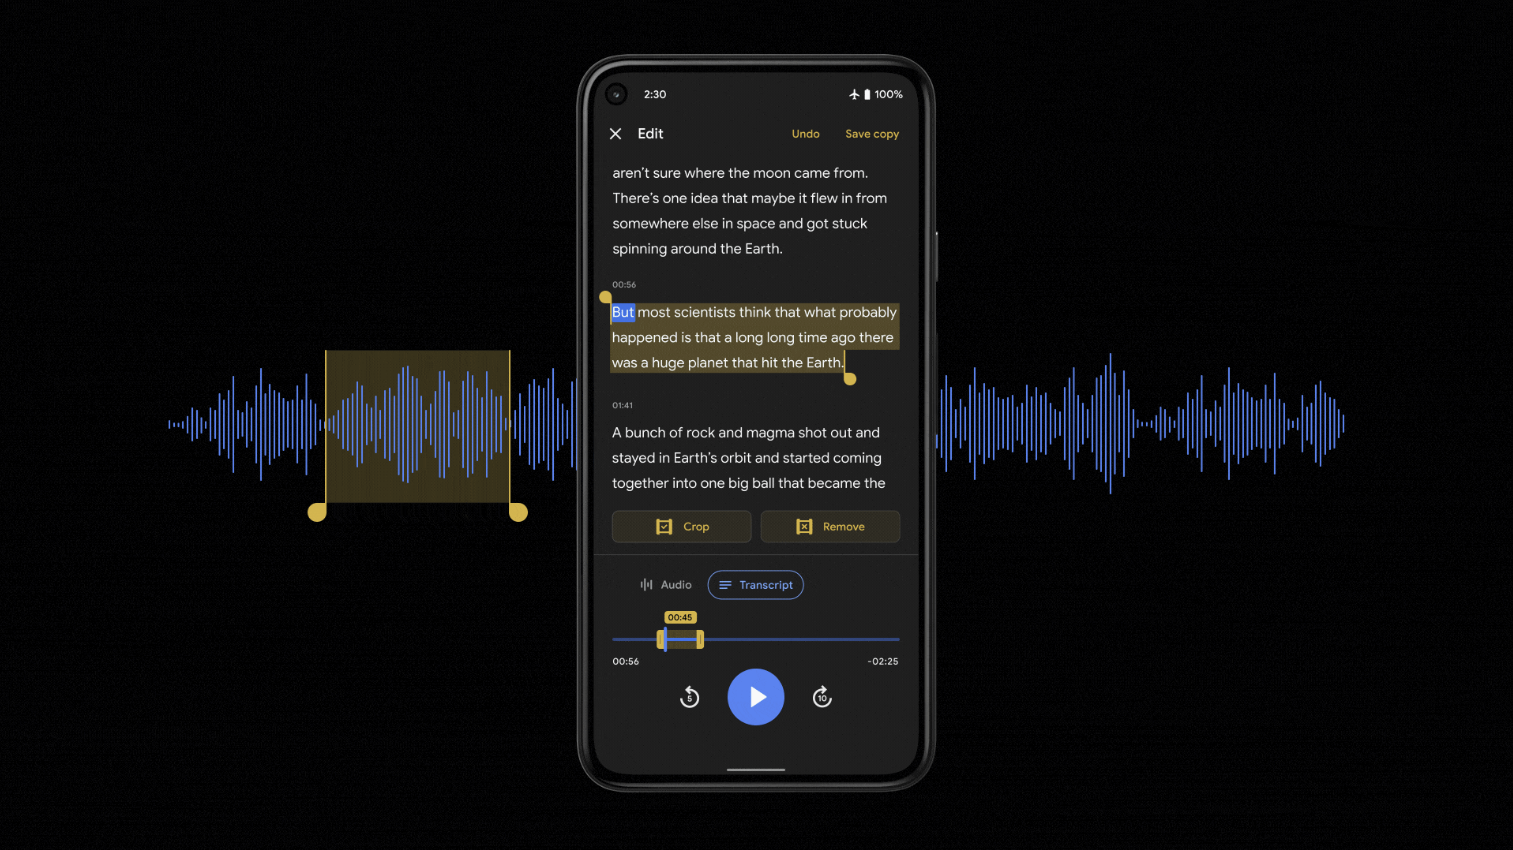 Recorder application from Google will allow you to cut recording fragments based on its transcription